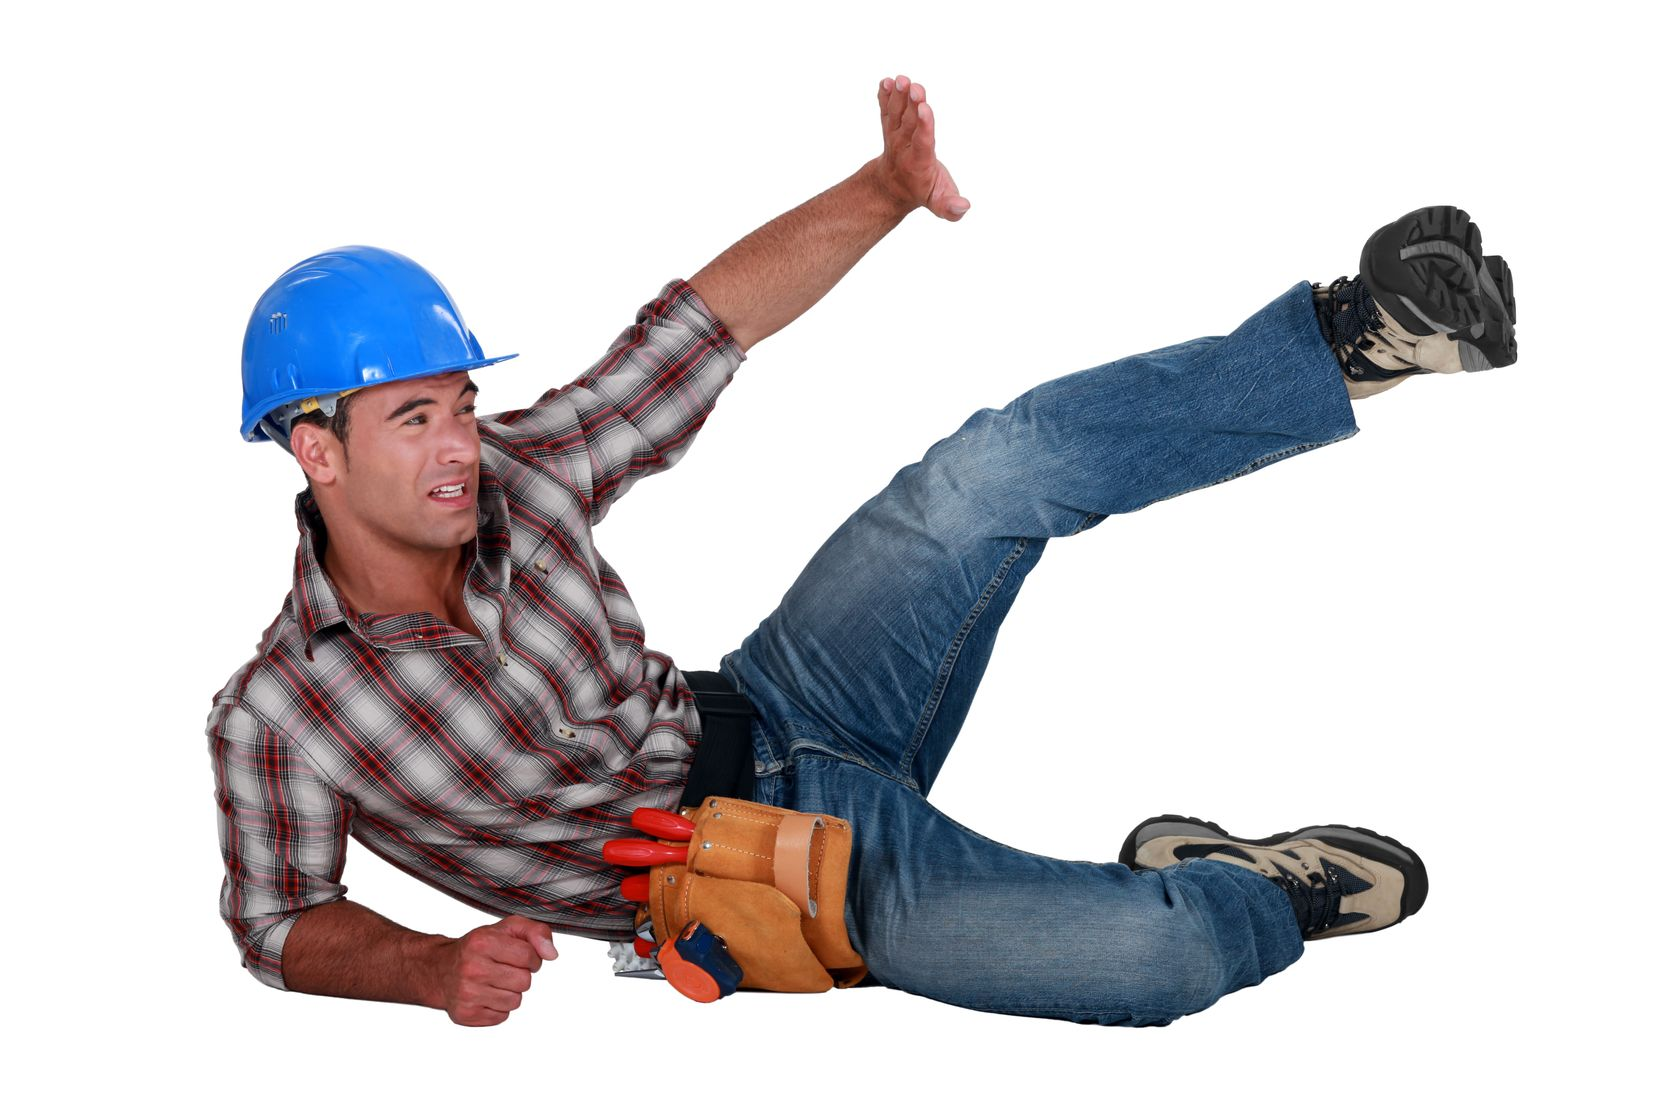 Orlando, FL. Workers Comp Insurance